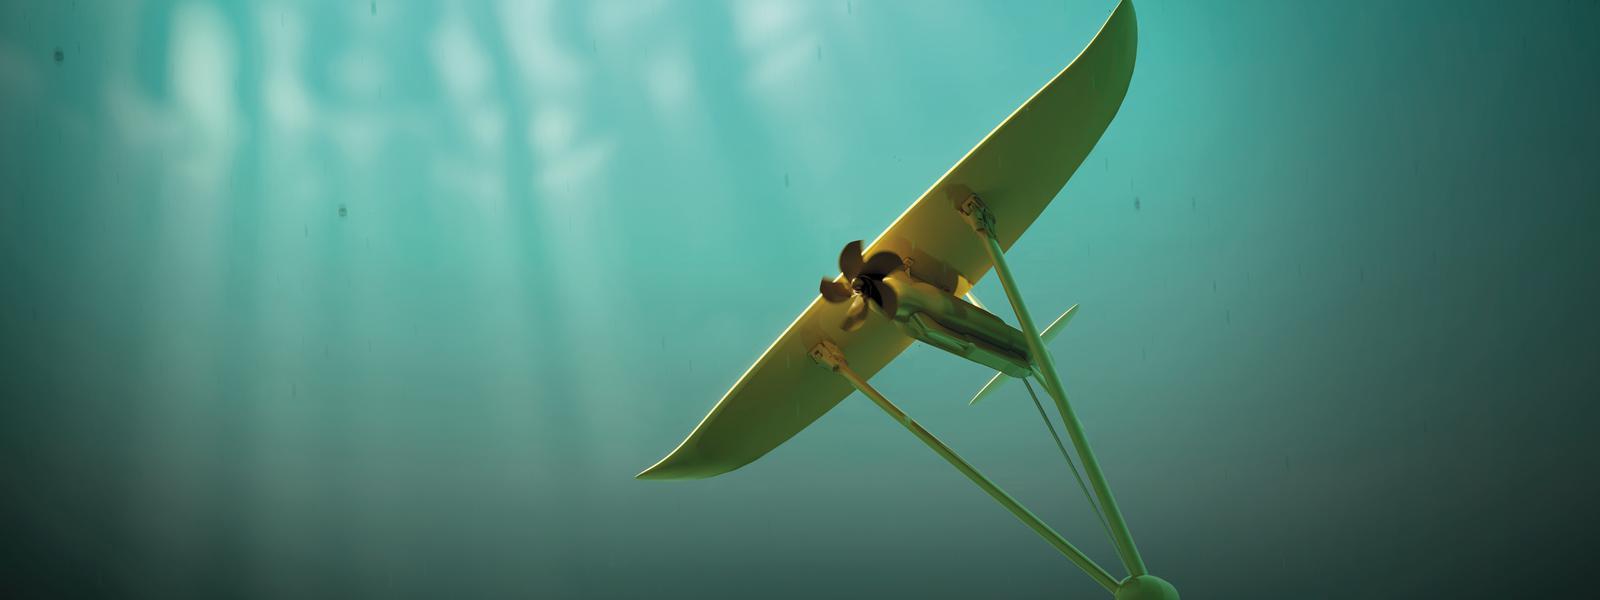 Minesto's Deep Green subsea tidal kite